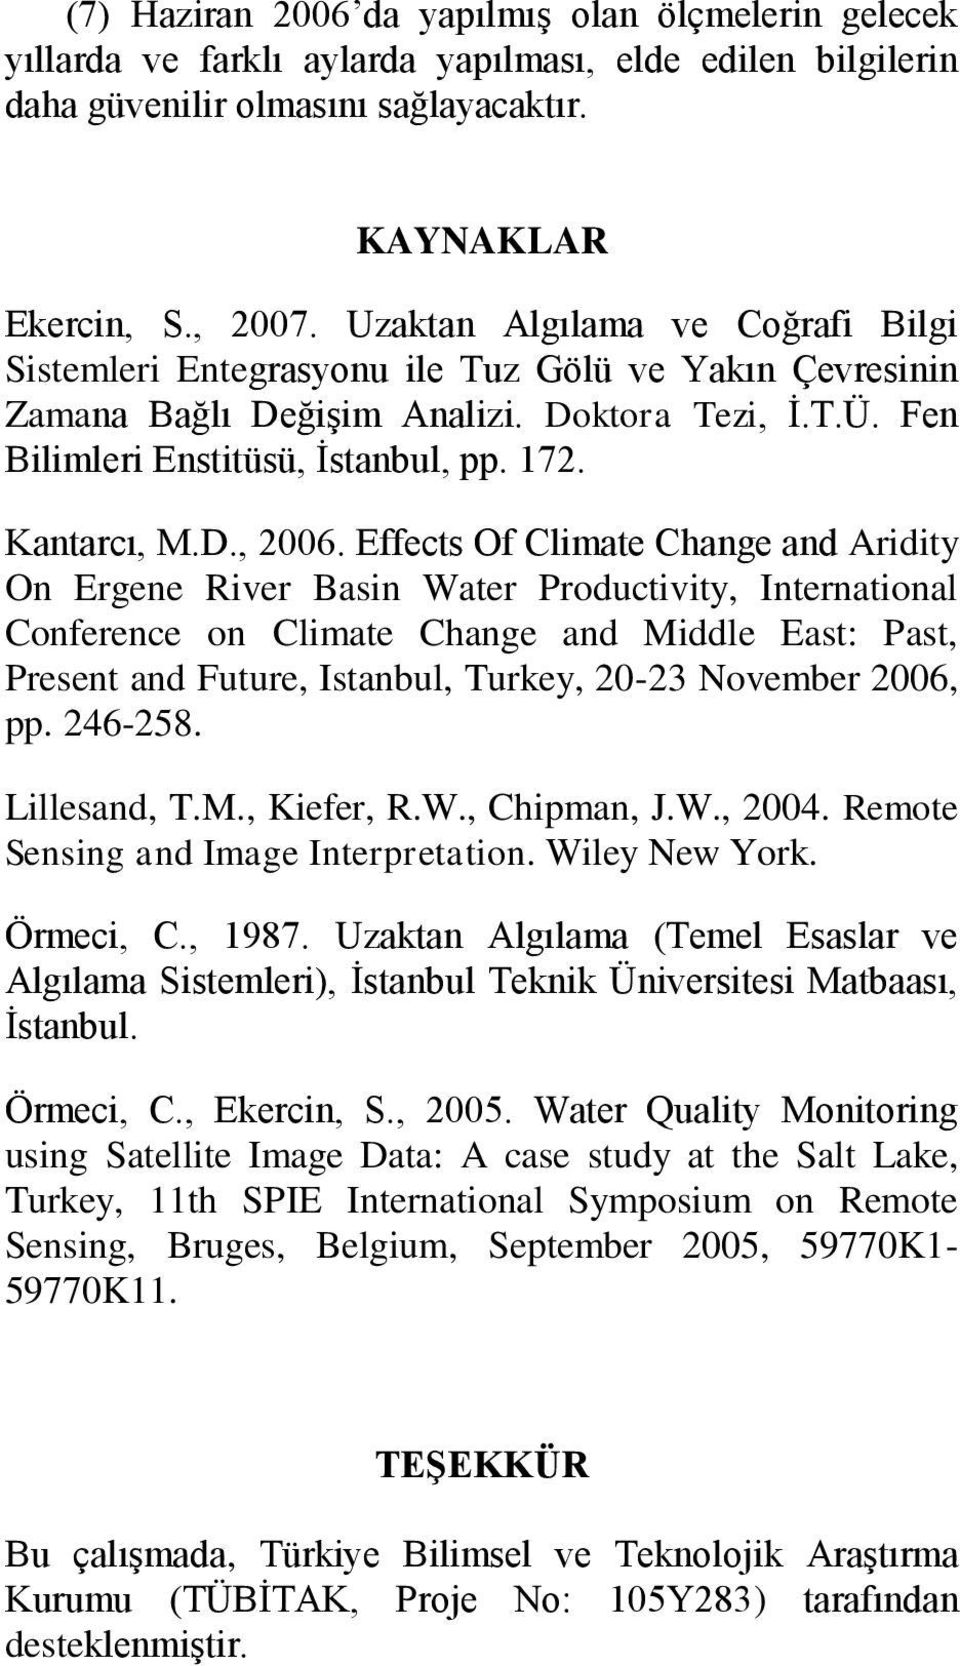 Effects Of Climate Change and Aridity On Ergene River Basin Water Productivity, International Conference on Climate Change and Middle East: Past, Present and Future, Istanbul, Turkey, 20-23 November